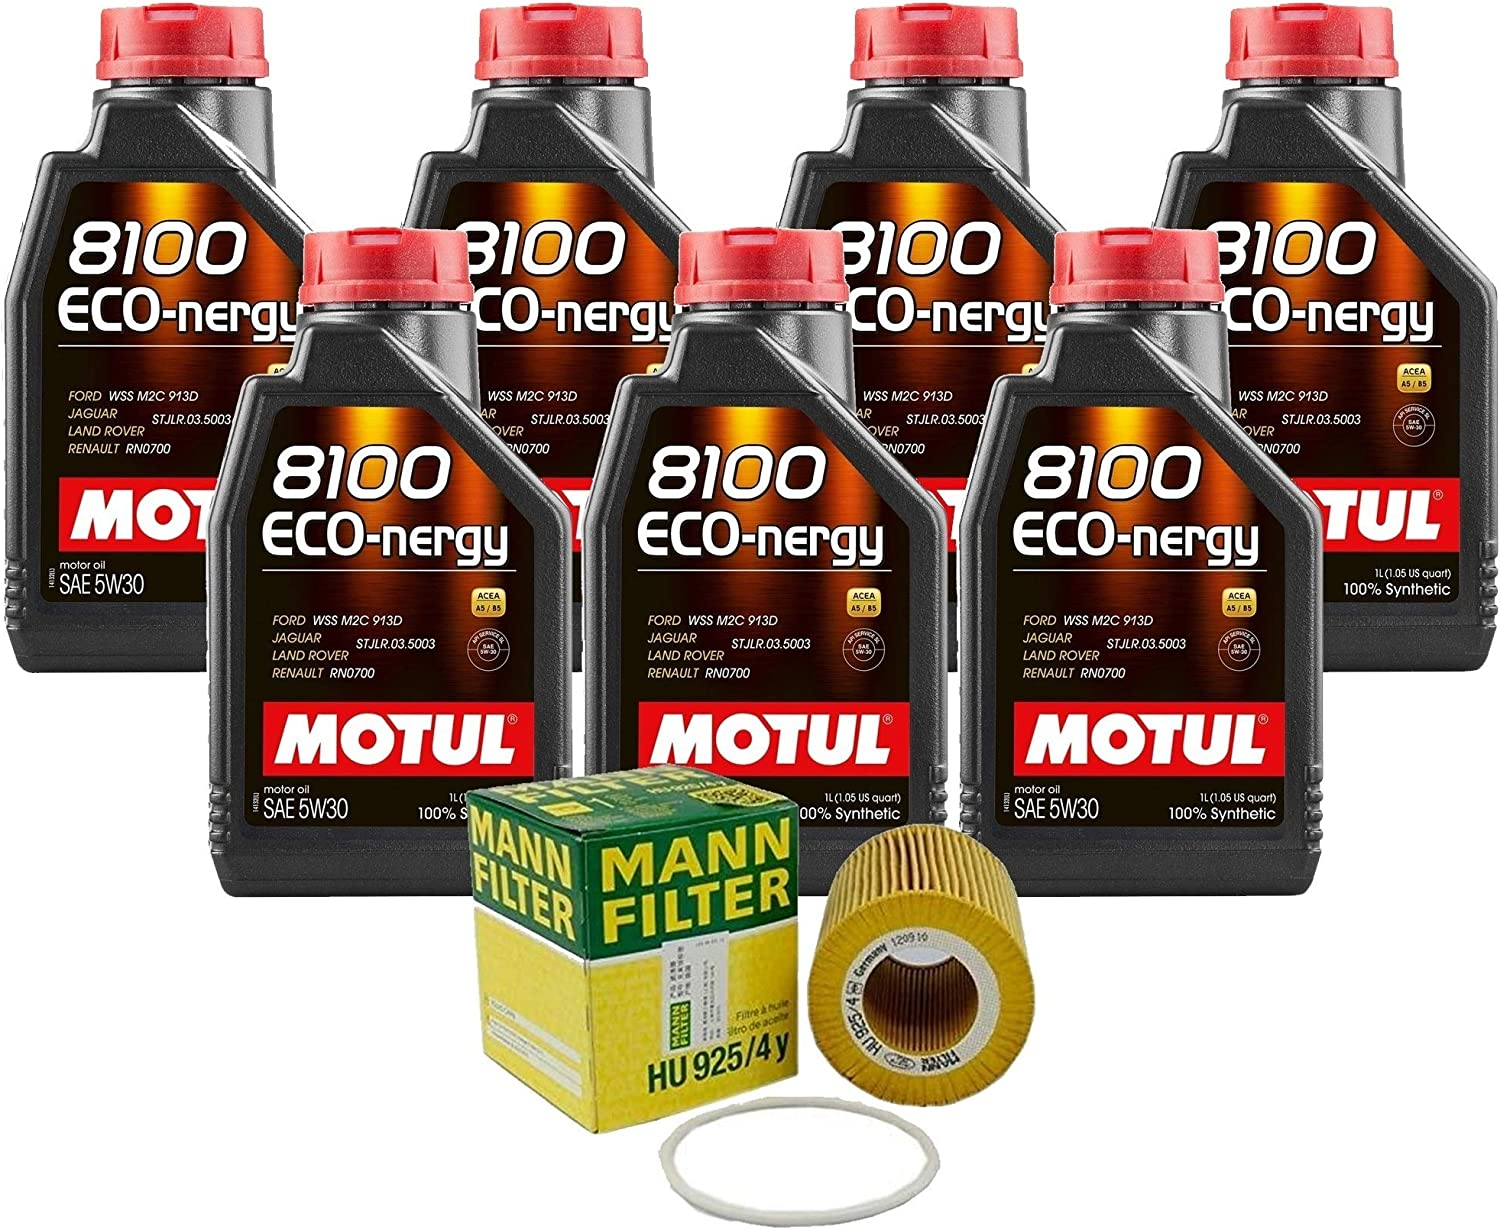 7L 8100 Same day shipping ECO-NERGY 5W30 Filter Motor Natu XC60 3.2 Don't miss the campaign Change Oil Kit